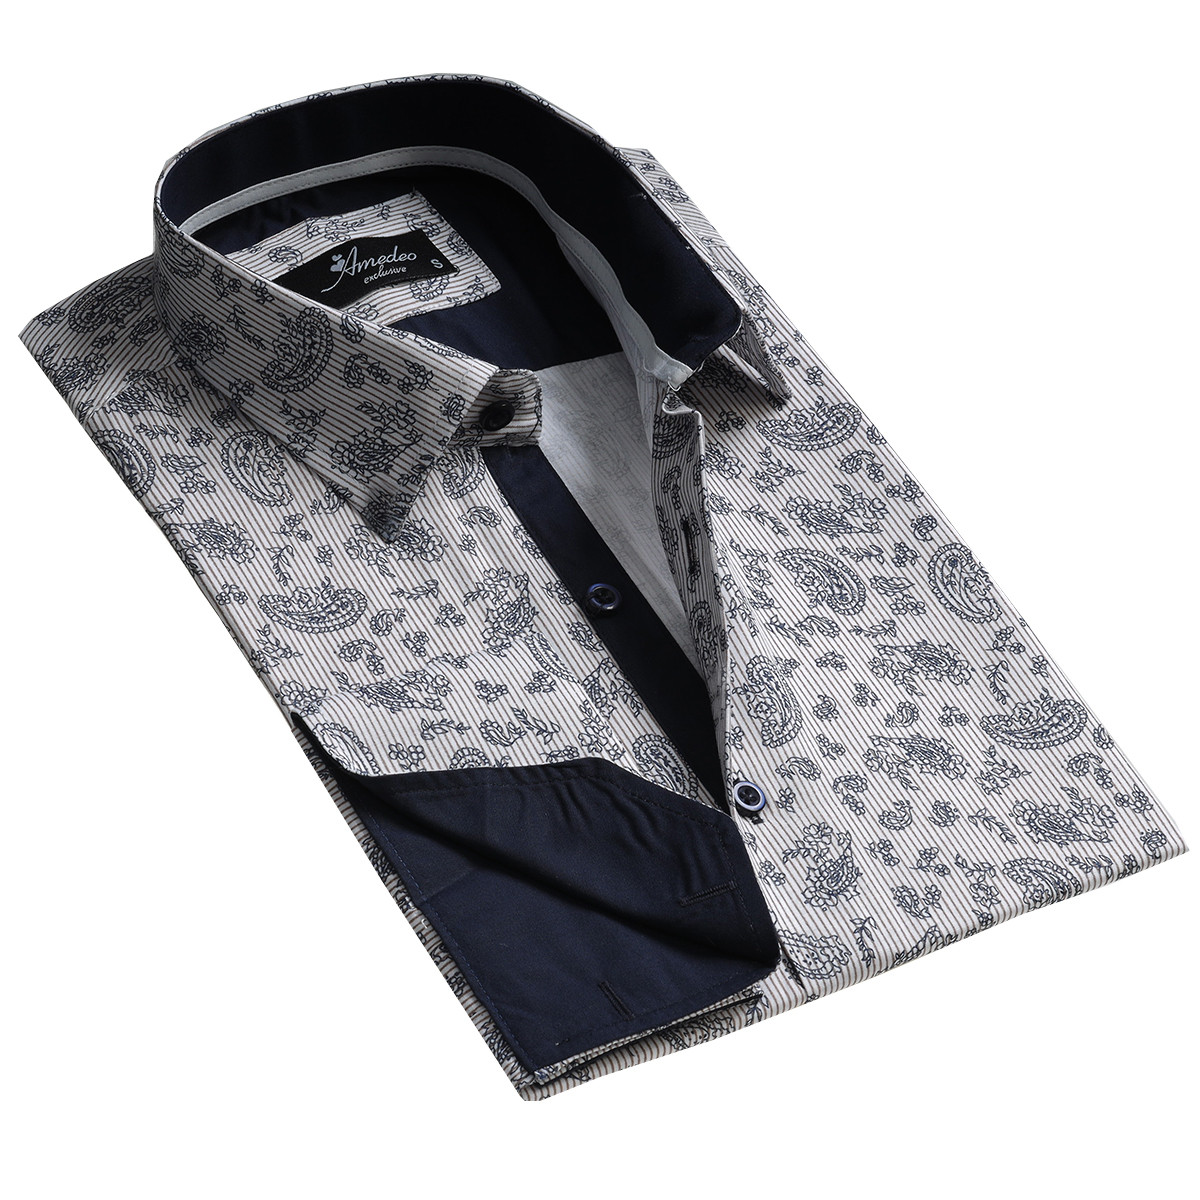 European Made & Designed Reversible Cuff Premium French Cuff Dress Shirt - light grey floral